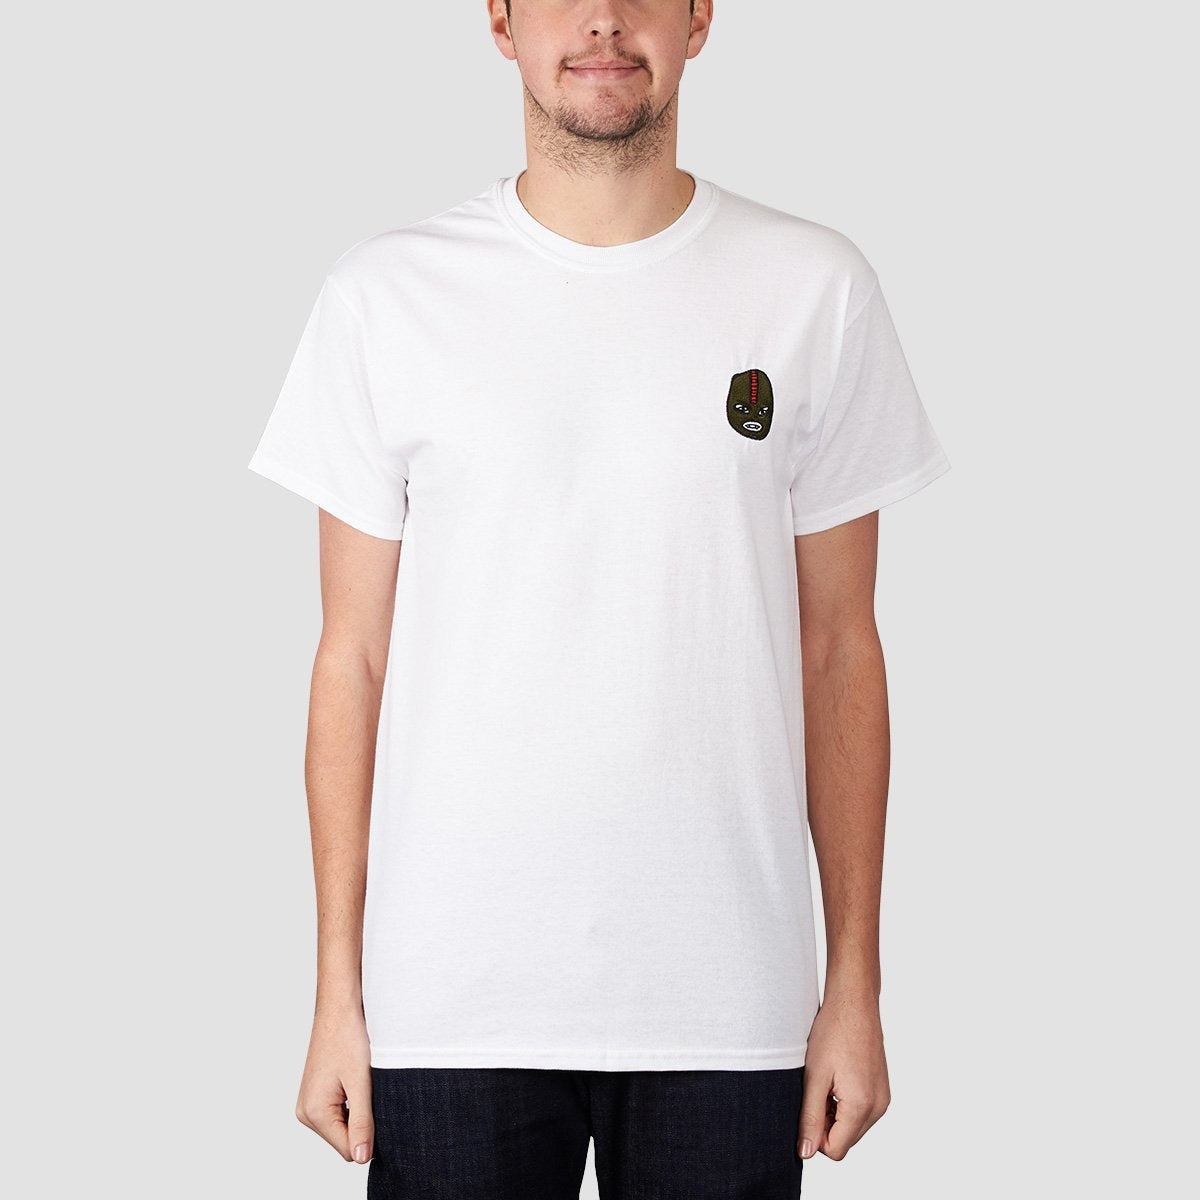 Unabomber Gimp Embroidered Tee White - Clothing